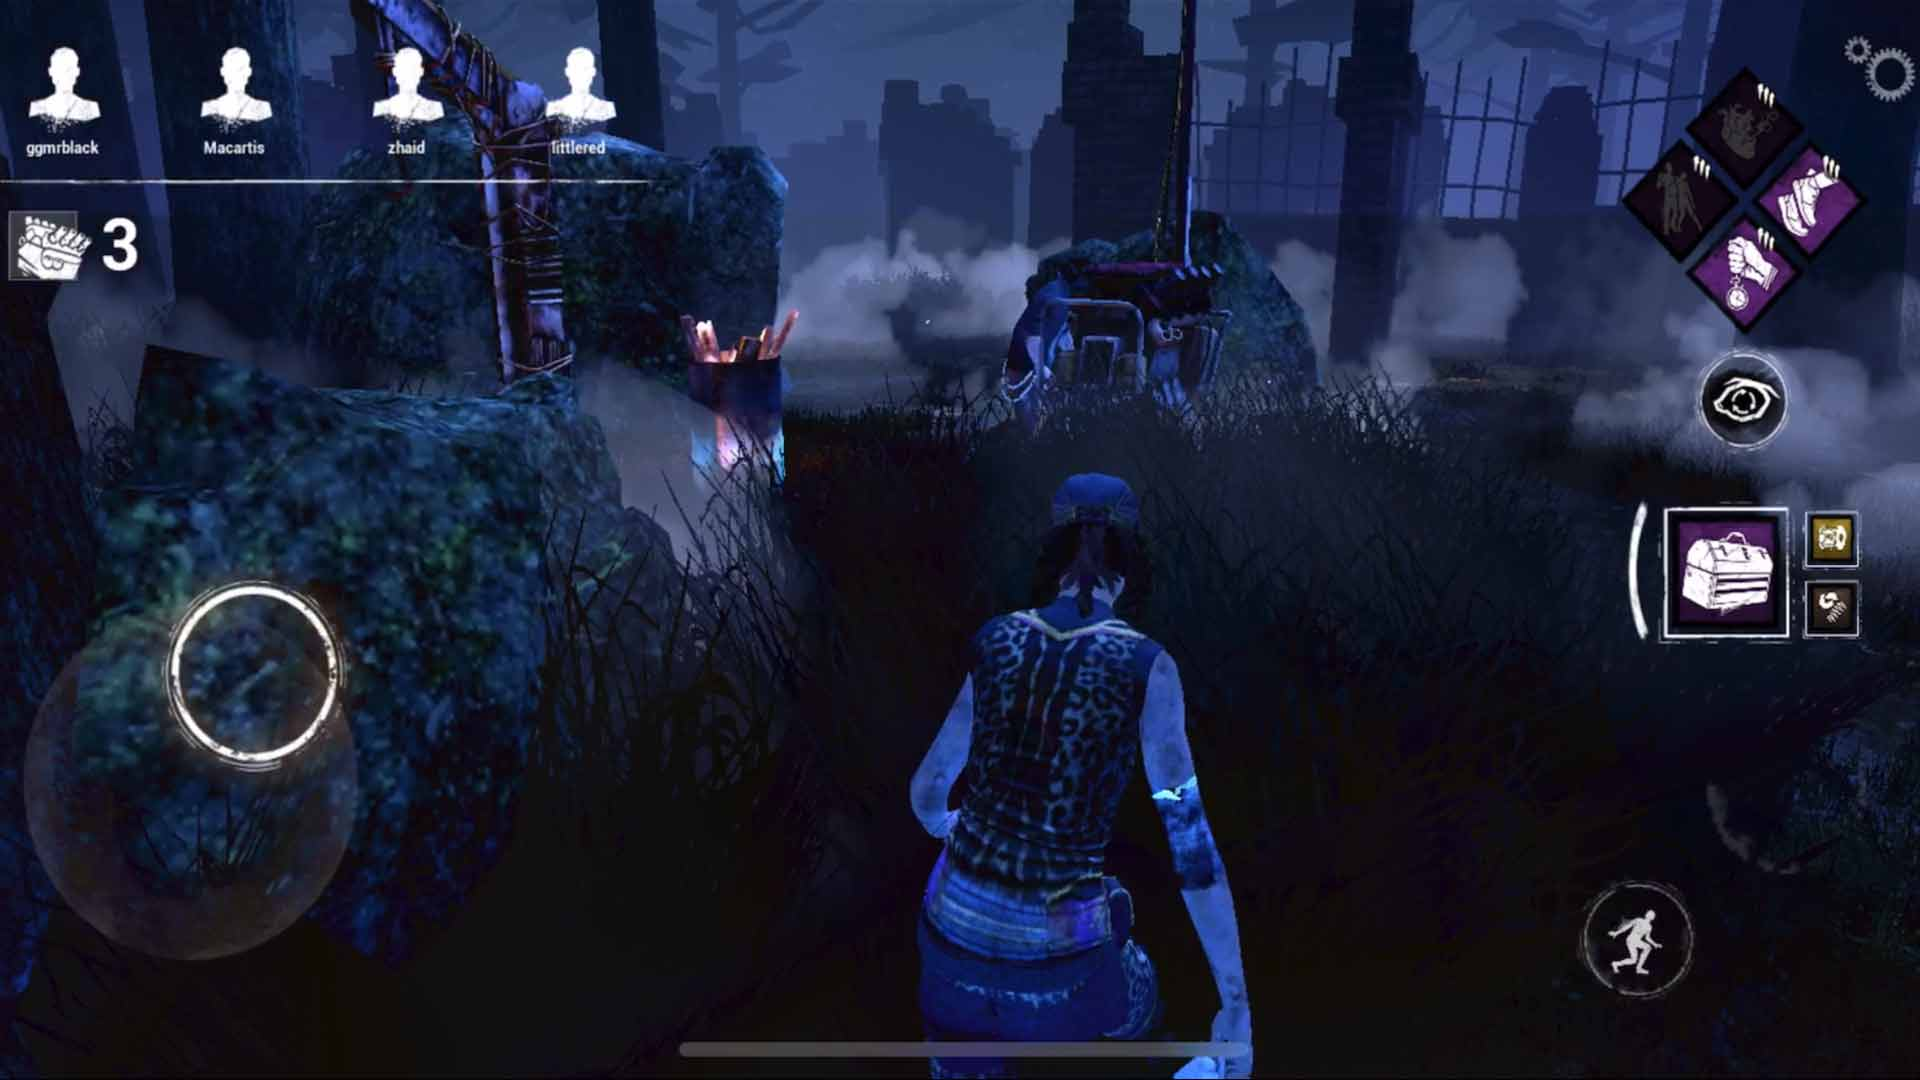 Dead by Daylight Mobile game